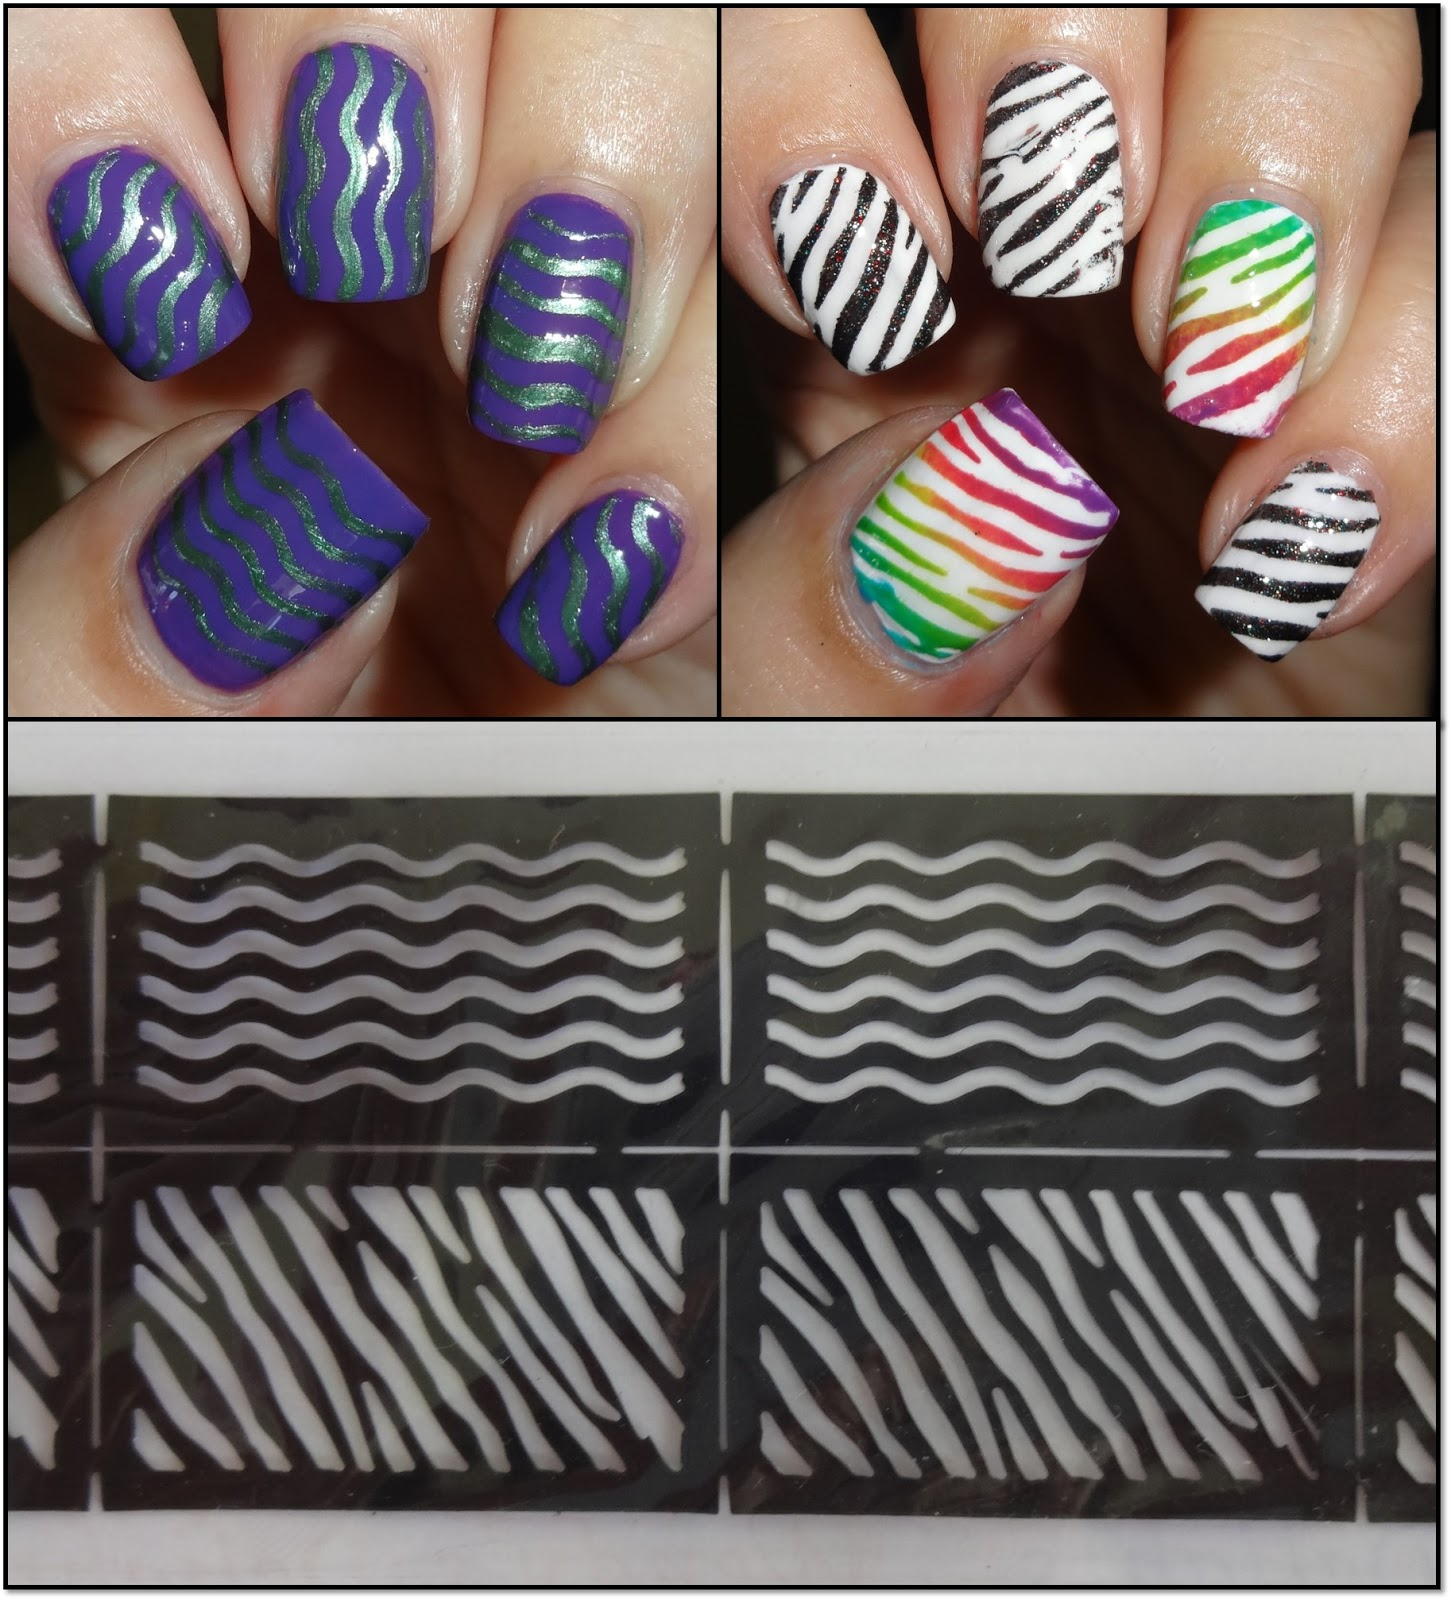 wendy 39 s delights born pretty store nail vinyl stencils wavy lines animal print. Black Bedroom Furniture Sets. Home Design Ideas